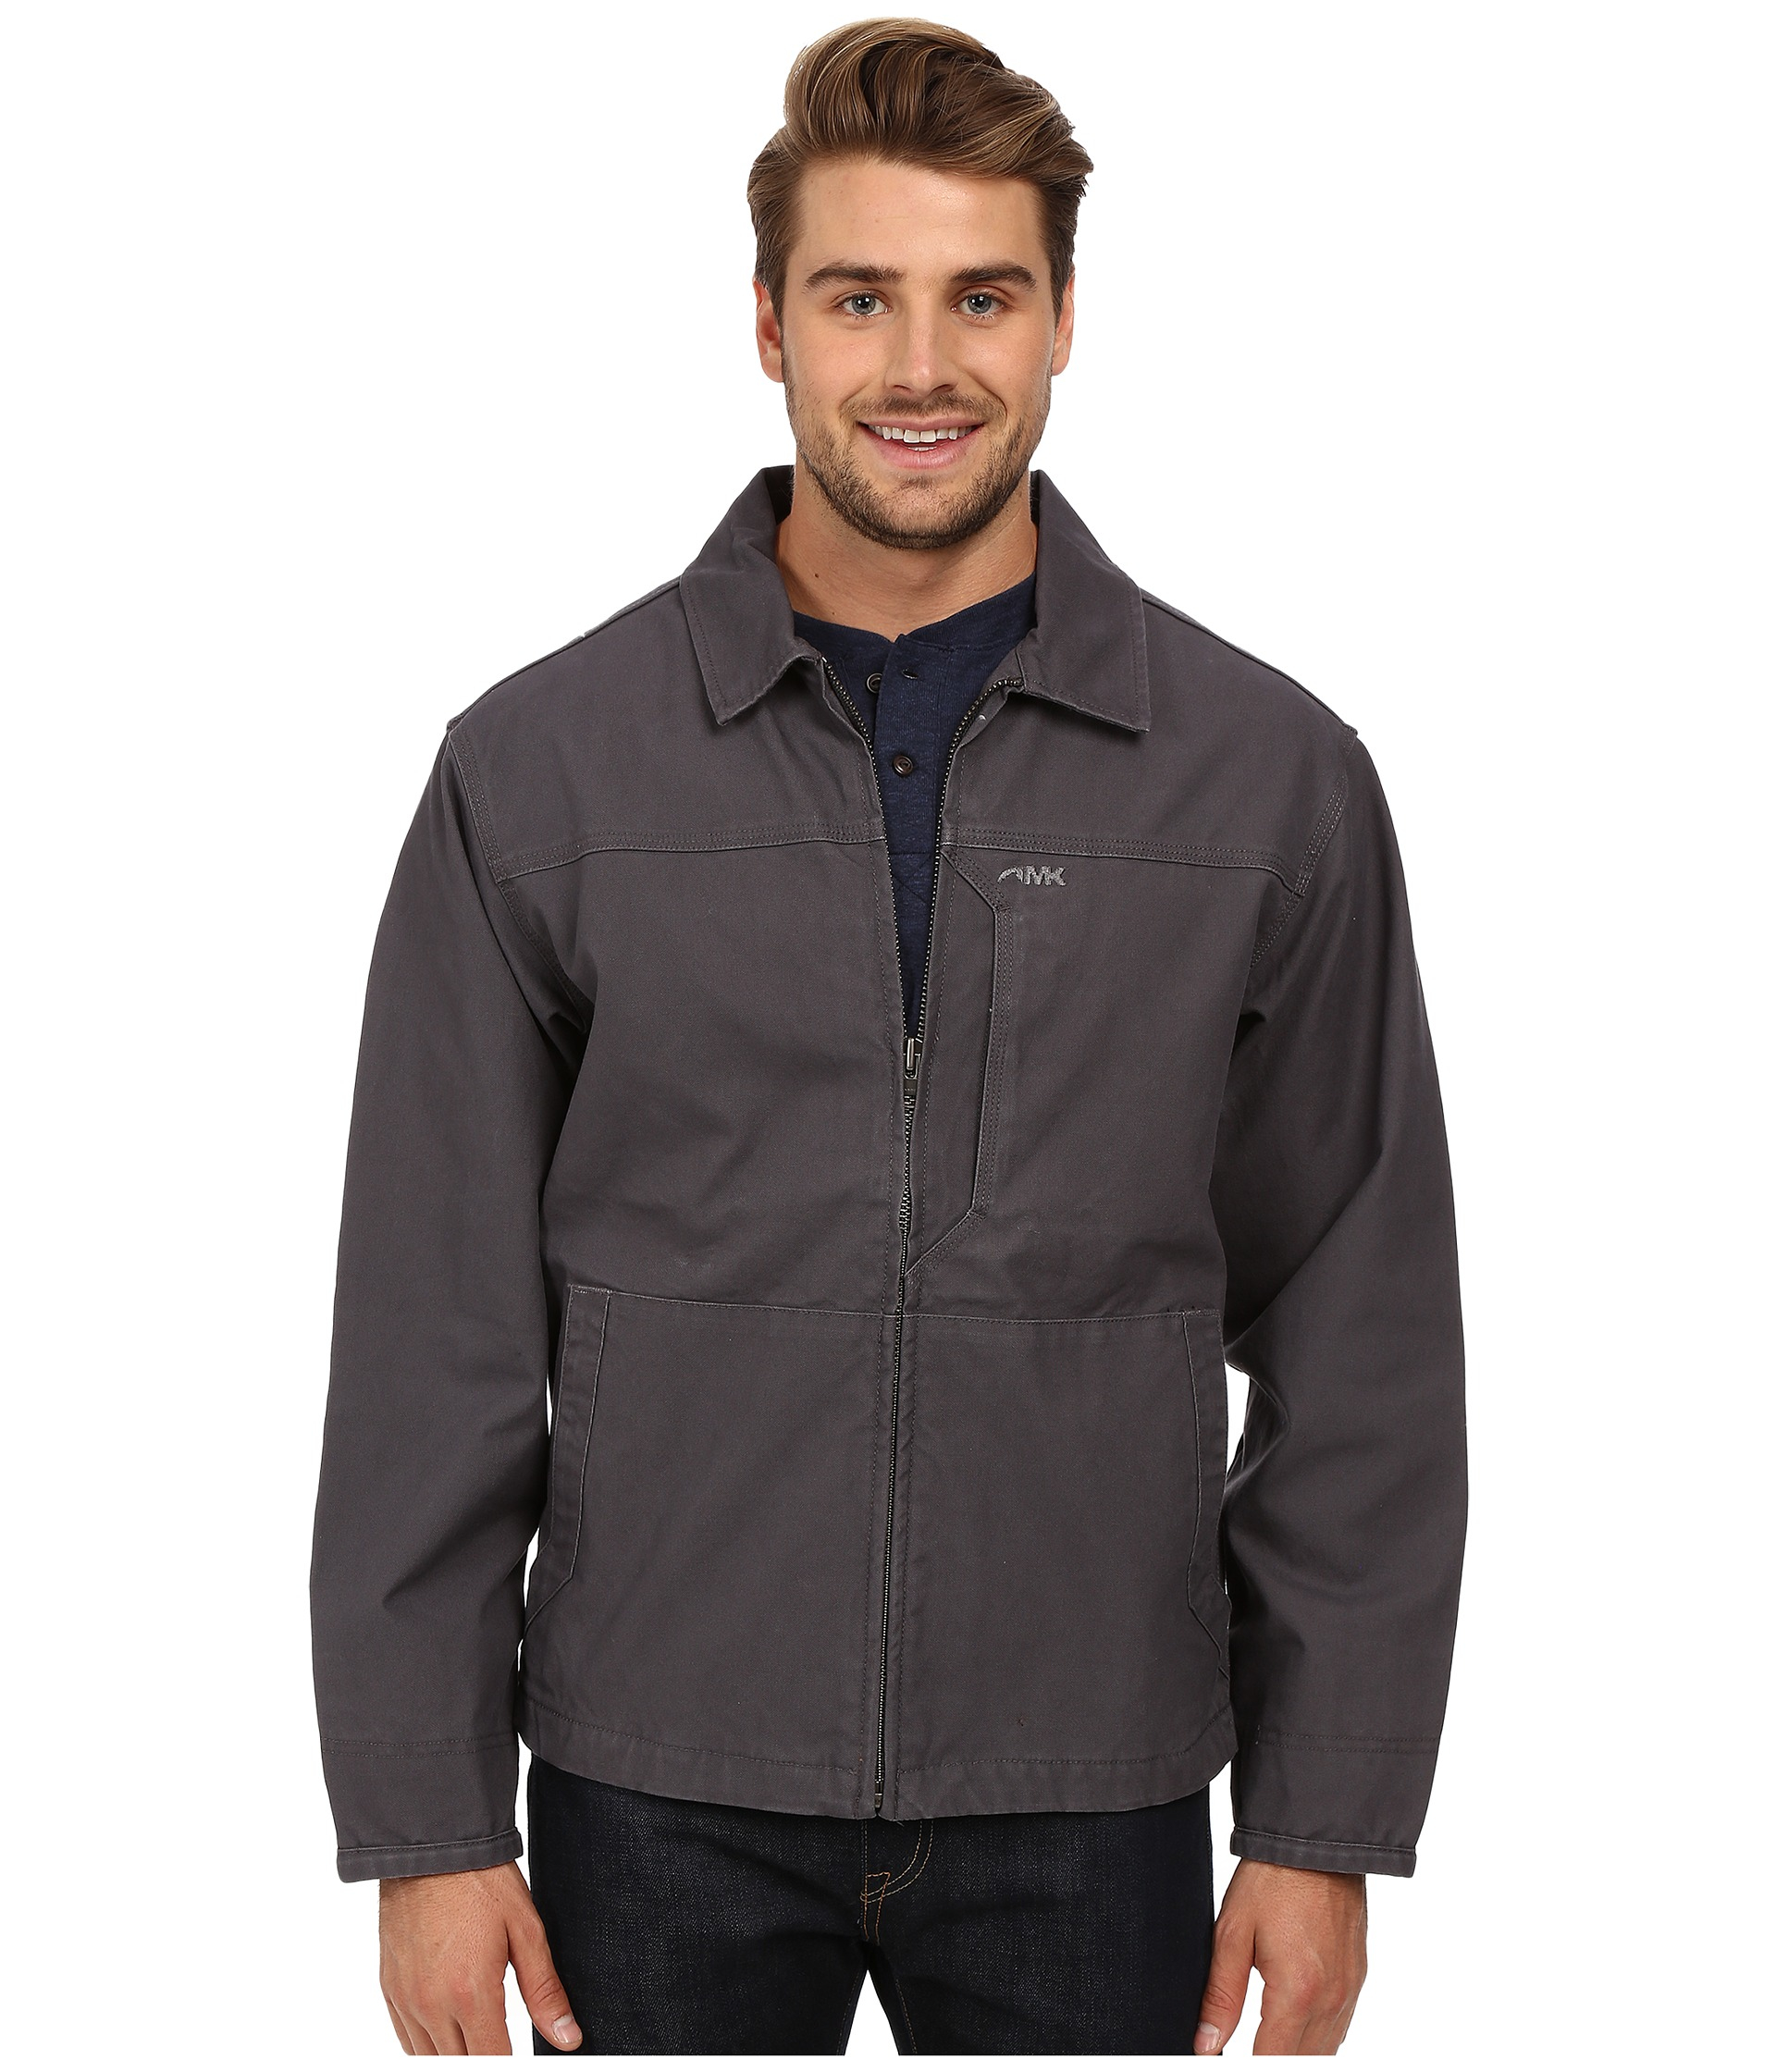 6069665445 Lyst - Mountain Khakis Stagecoach Jacket in Black for Men